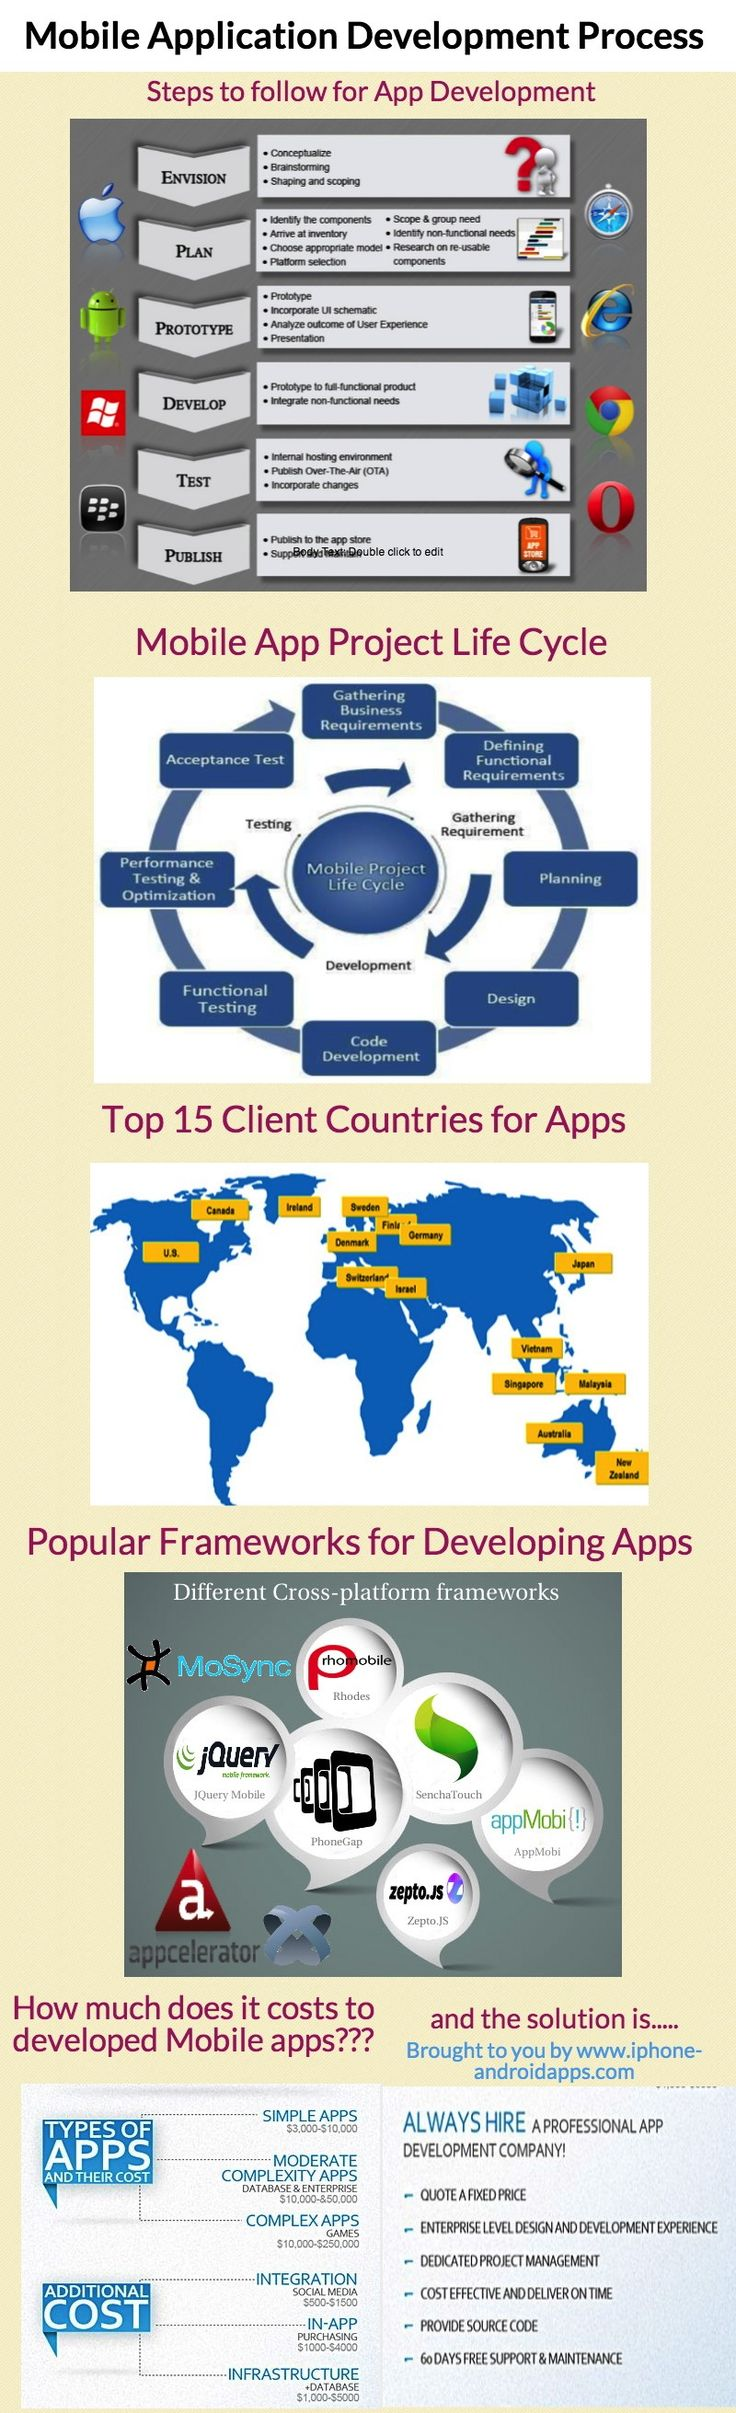 #Mobile #Application #Development Process!!! #infographics